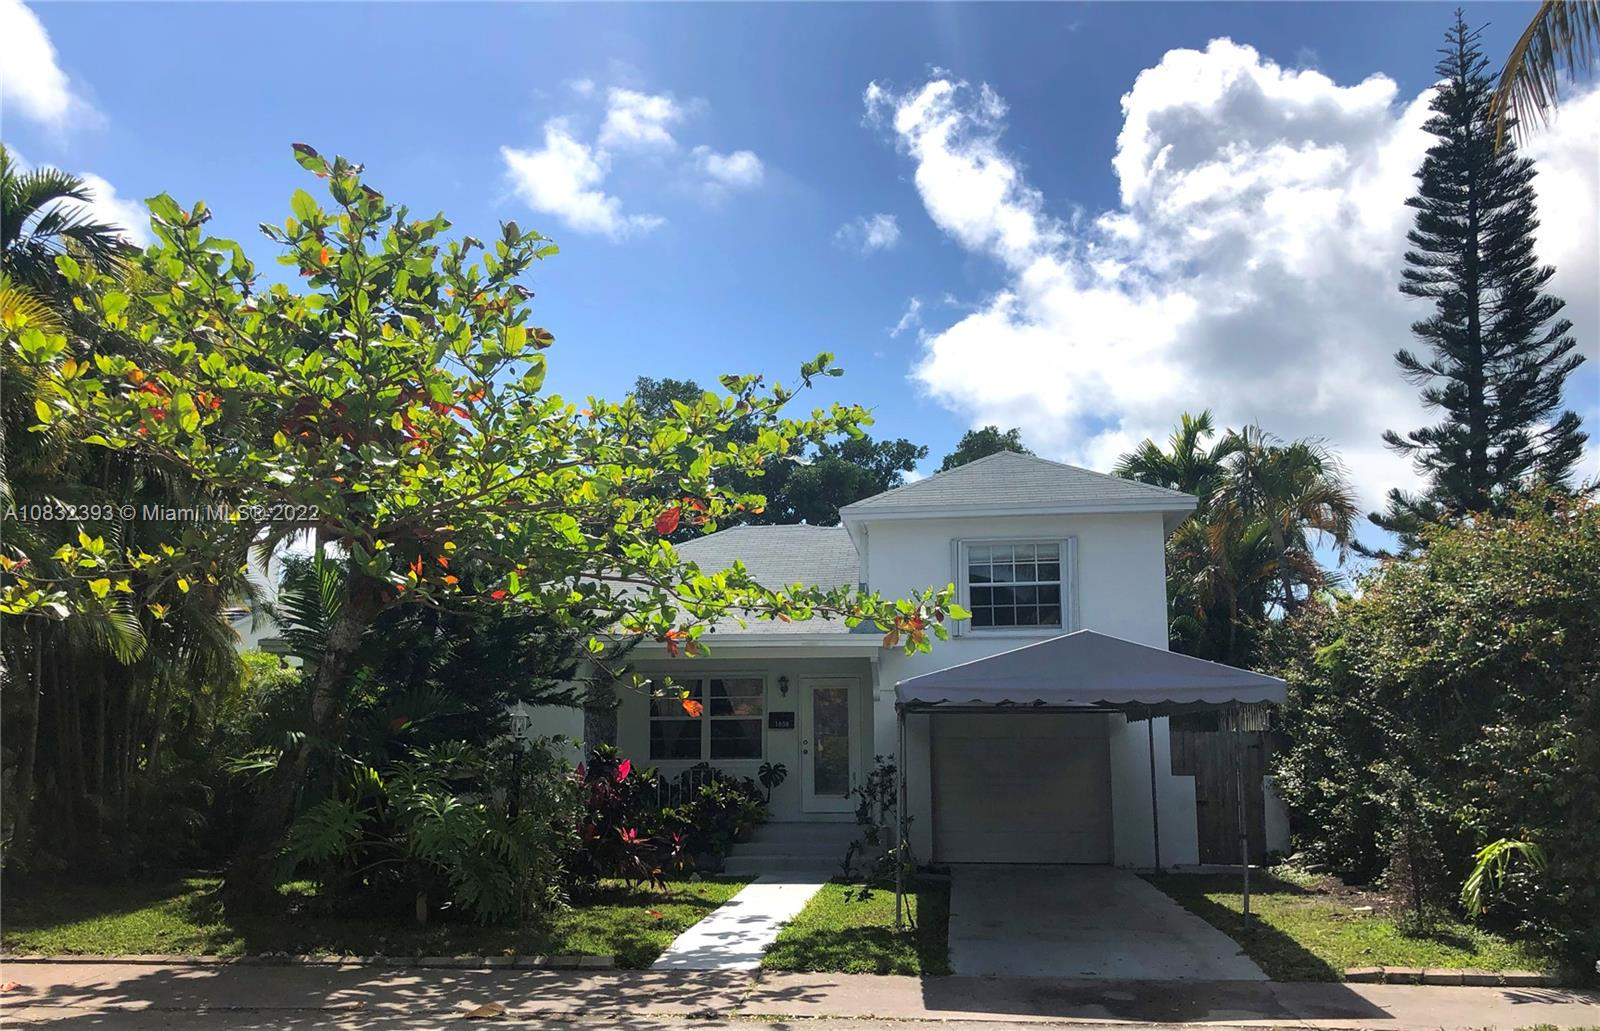 AWESOME POSITIVE ENERGY HOUSE, if you feel it if for you! Perfect Living opportunity in Miami Beach! Gas stove, stand by gas water heater, gas dryer. Accordion shutters on all windows only two remaining hurricane panels. Impact doors including garage. Terrazzo floor all spaces, tile in kitchen. No HOA, No rental restrictions, Pet-friendly, in the desirable neighborhood of Normandy Isle. Great Golf court, walking distance to all kinds of restaurants and park and pool community center. And the best, it is only 5 minutes away from the beach. What could I say? LOCATION!. Besides the 4 bedrooms, (one bed converted), this is a big house. The backyard is one of its best features. It's big enough to host many events. Come to see it and bring your offer.